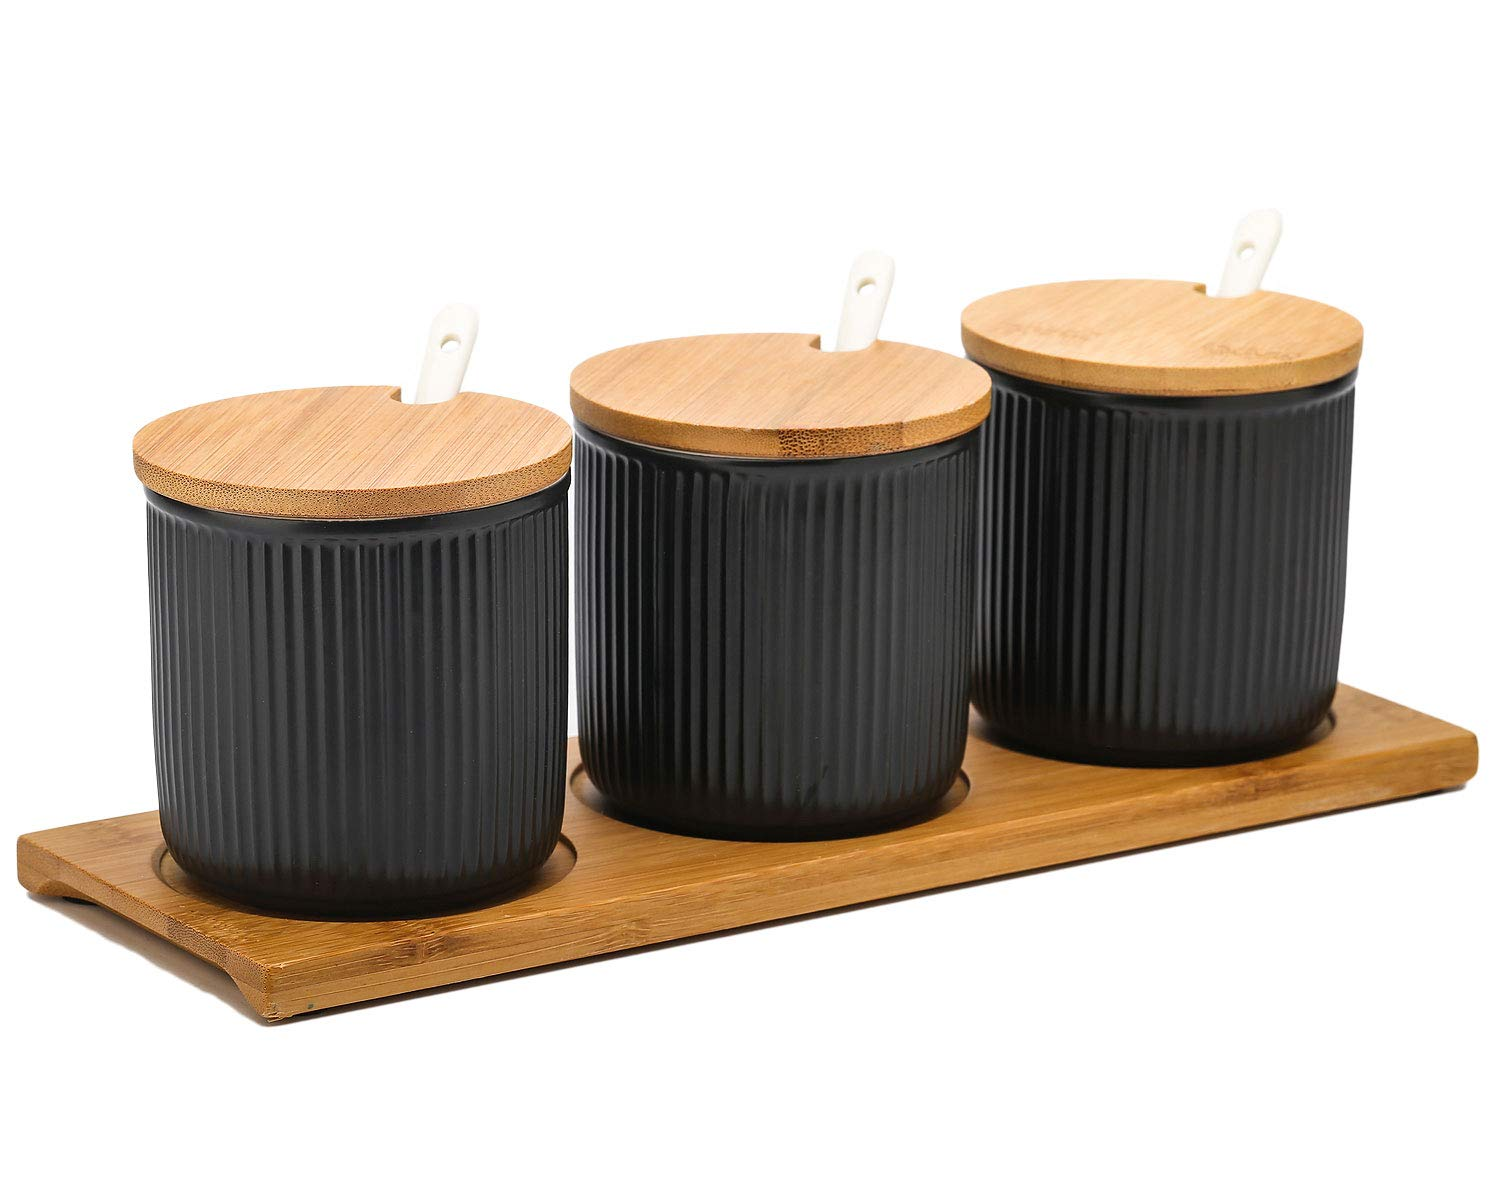 VanEnjoy Ceramic Sugar Spice Containers Porcelain Jar with Bamboo Lids, Tray and Spoons Muti-Functional Round Condiment Jar for Home Set of 3